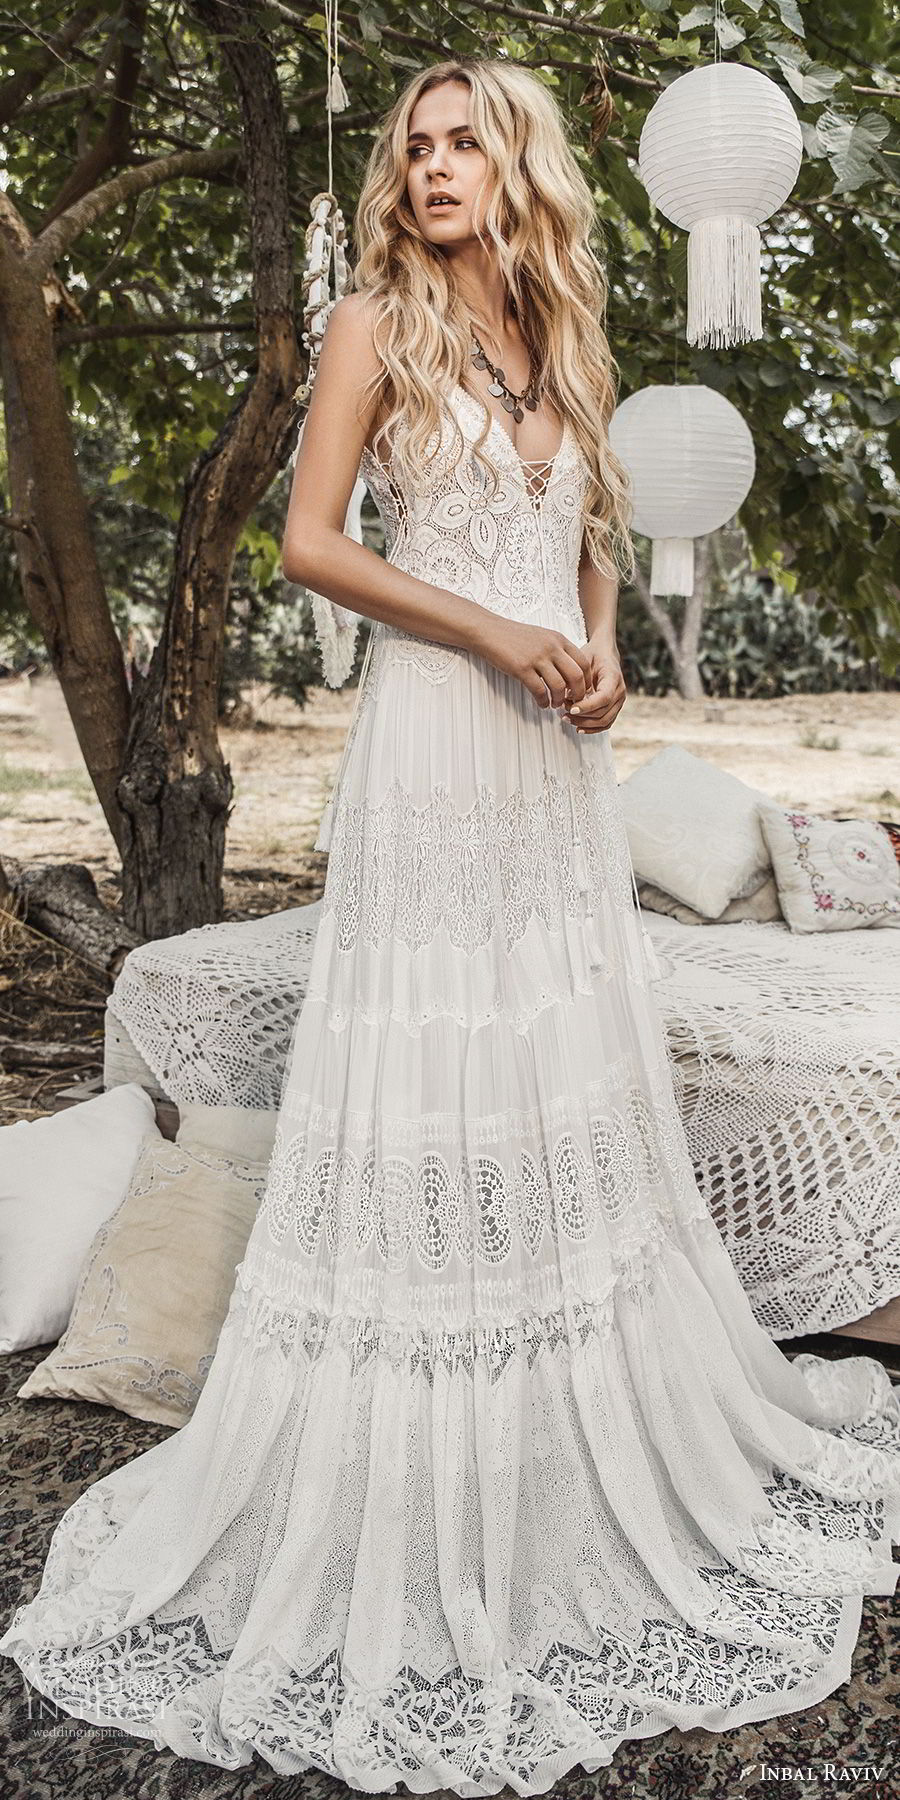 inbal raviv 2017 bridal sleeveless deep v neck full lace embellishment bohemian soft a  line wedding dress sweep train (gipsy) mv